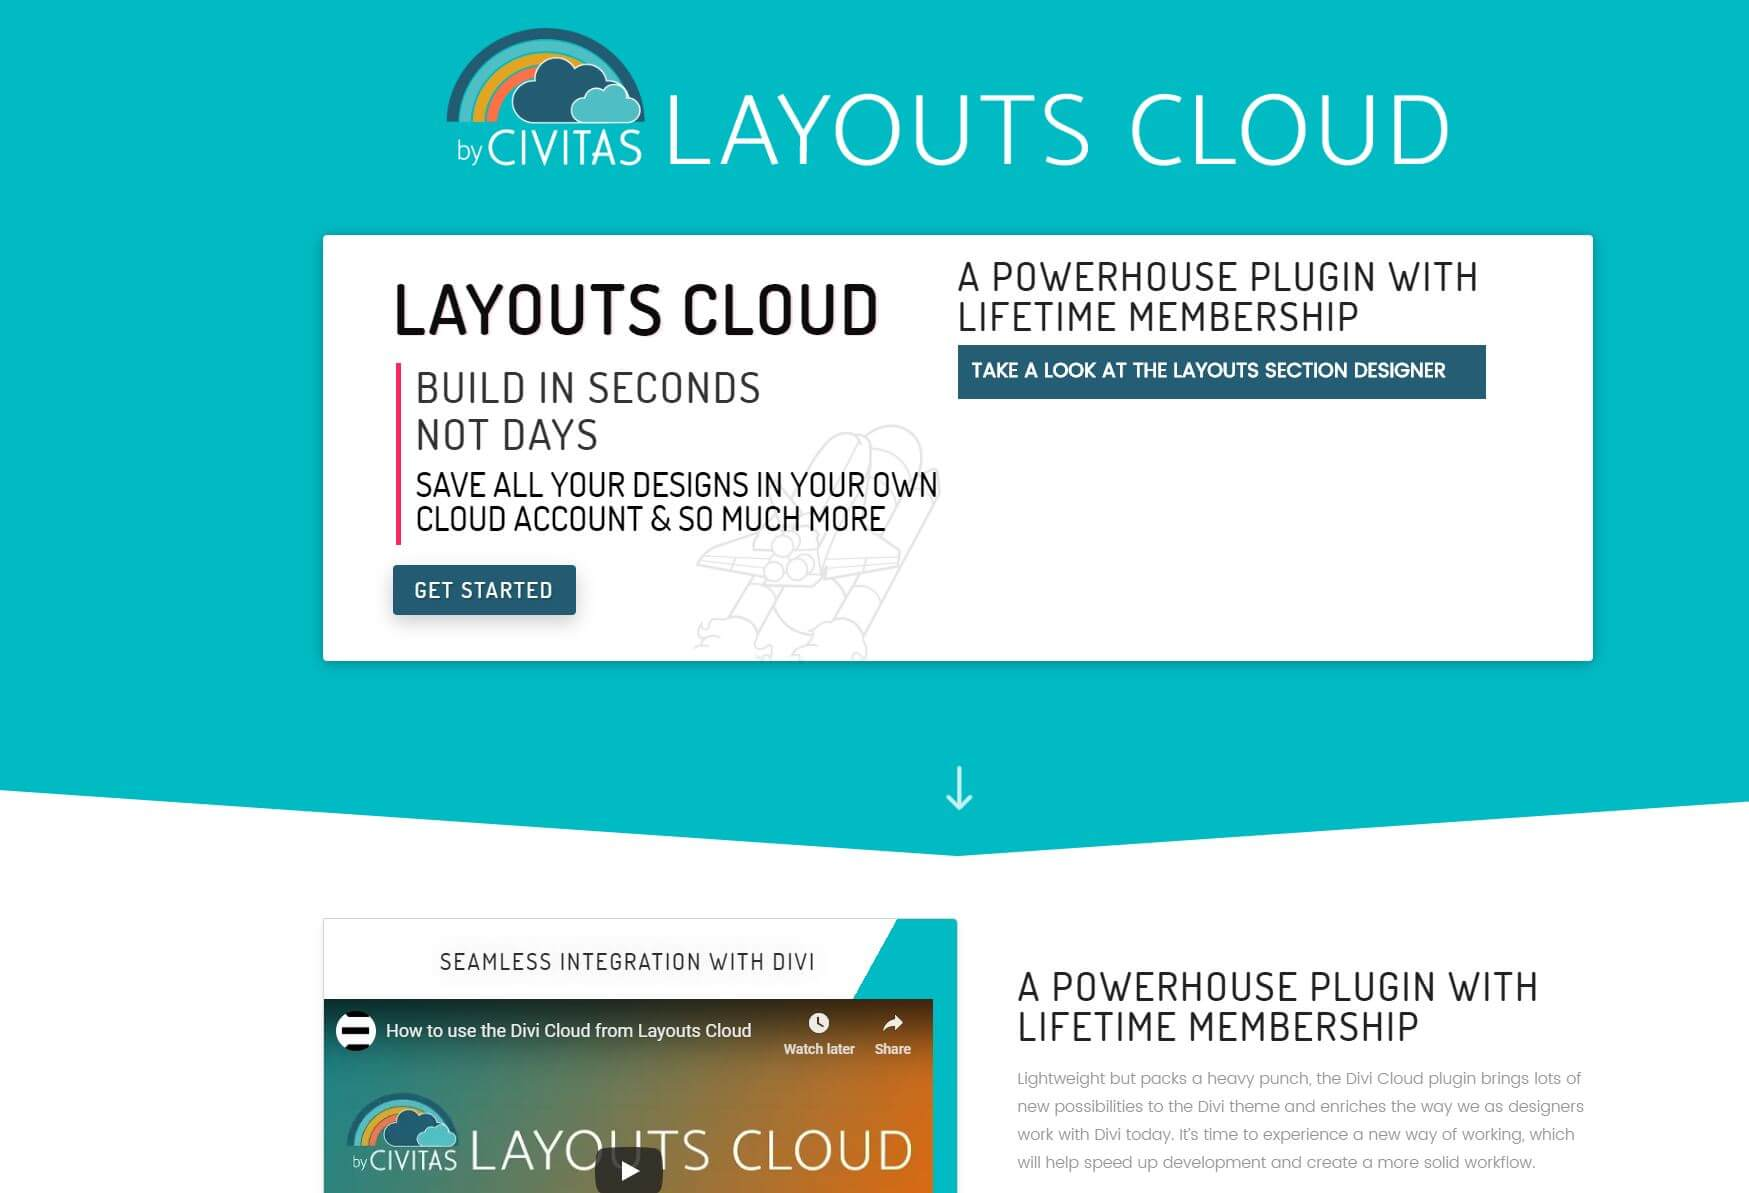 Divi Cloud | Divi Theme Layouts | Memberships